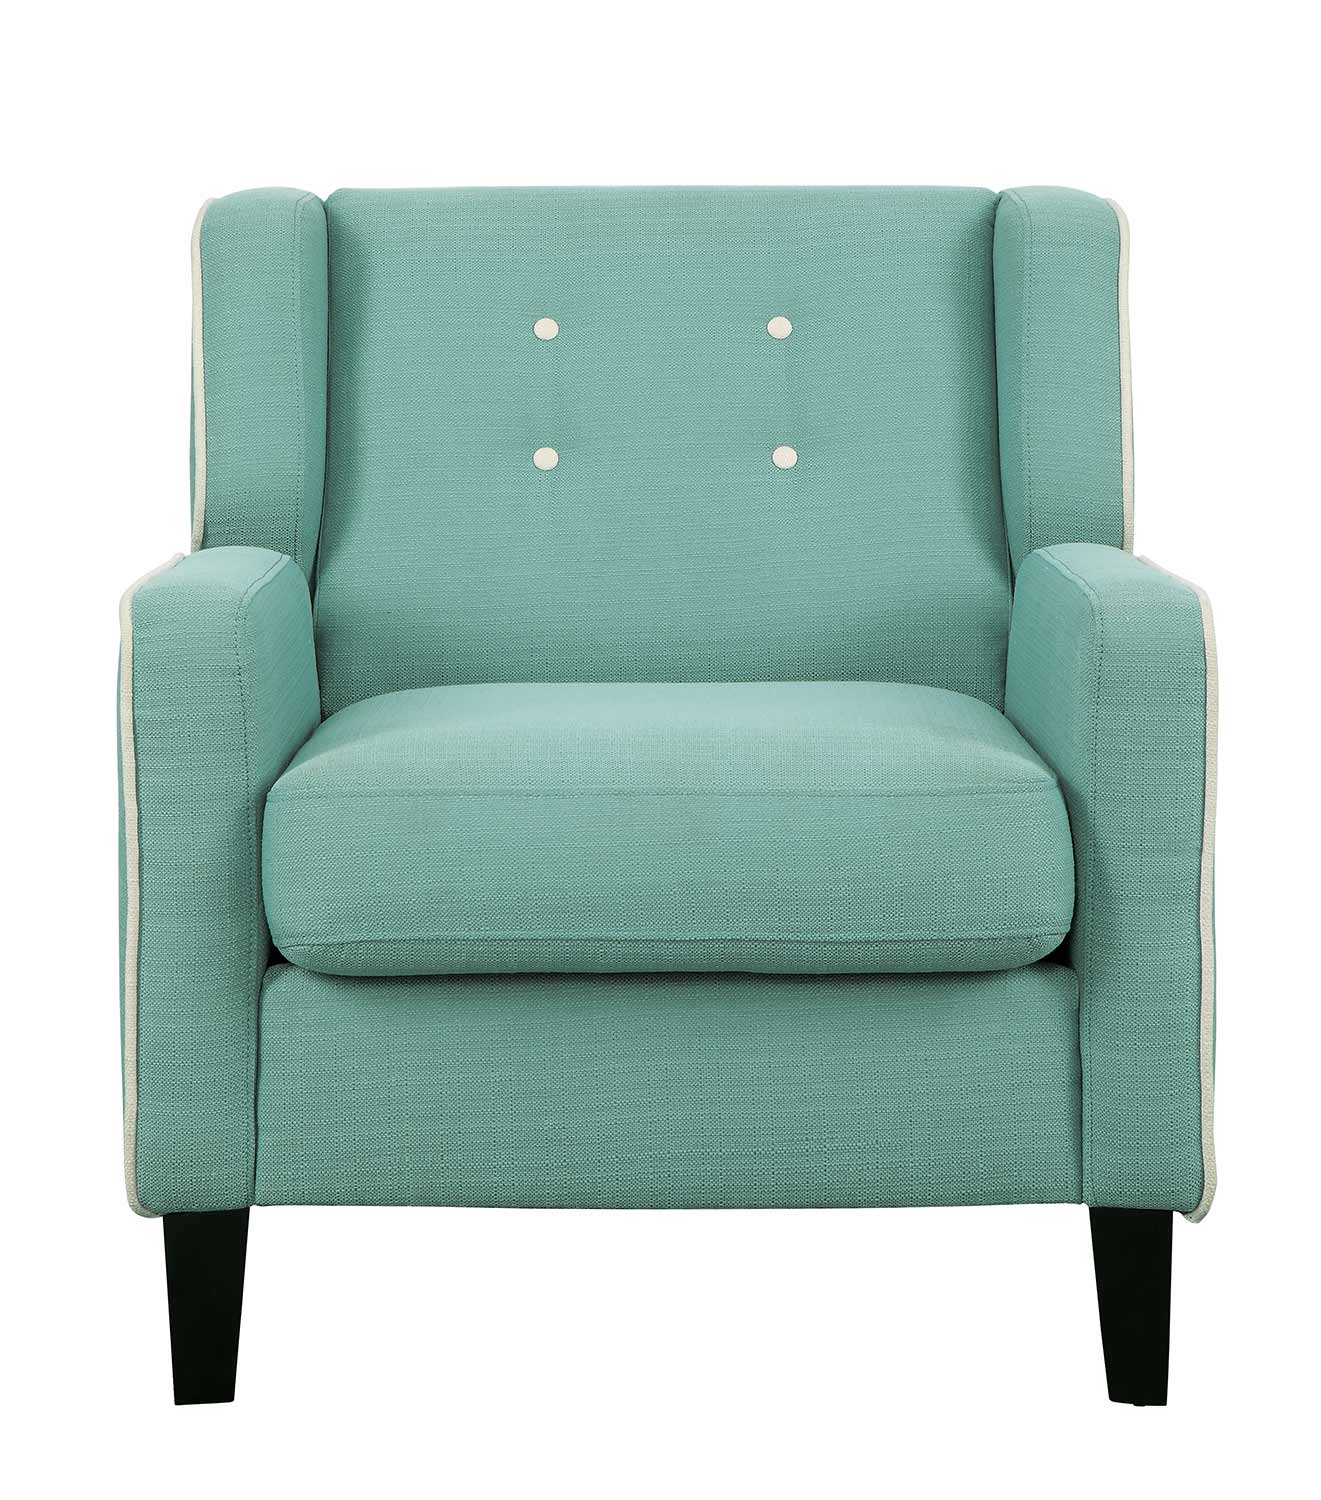 Homelegance Roweena Accent Chair - Teal